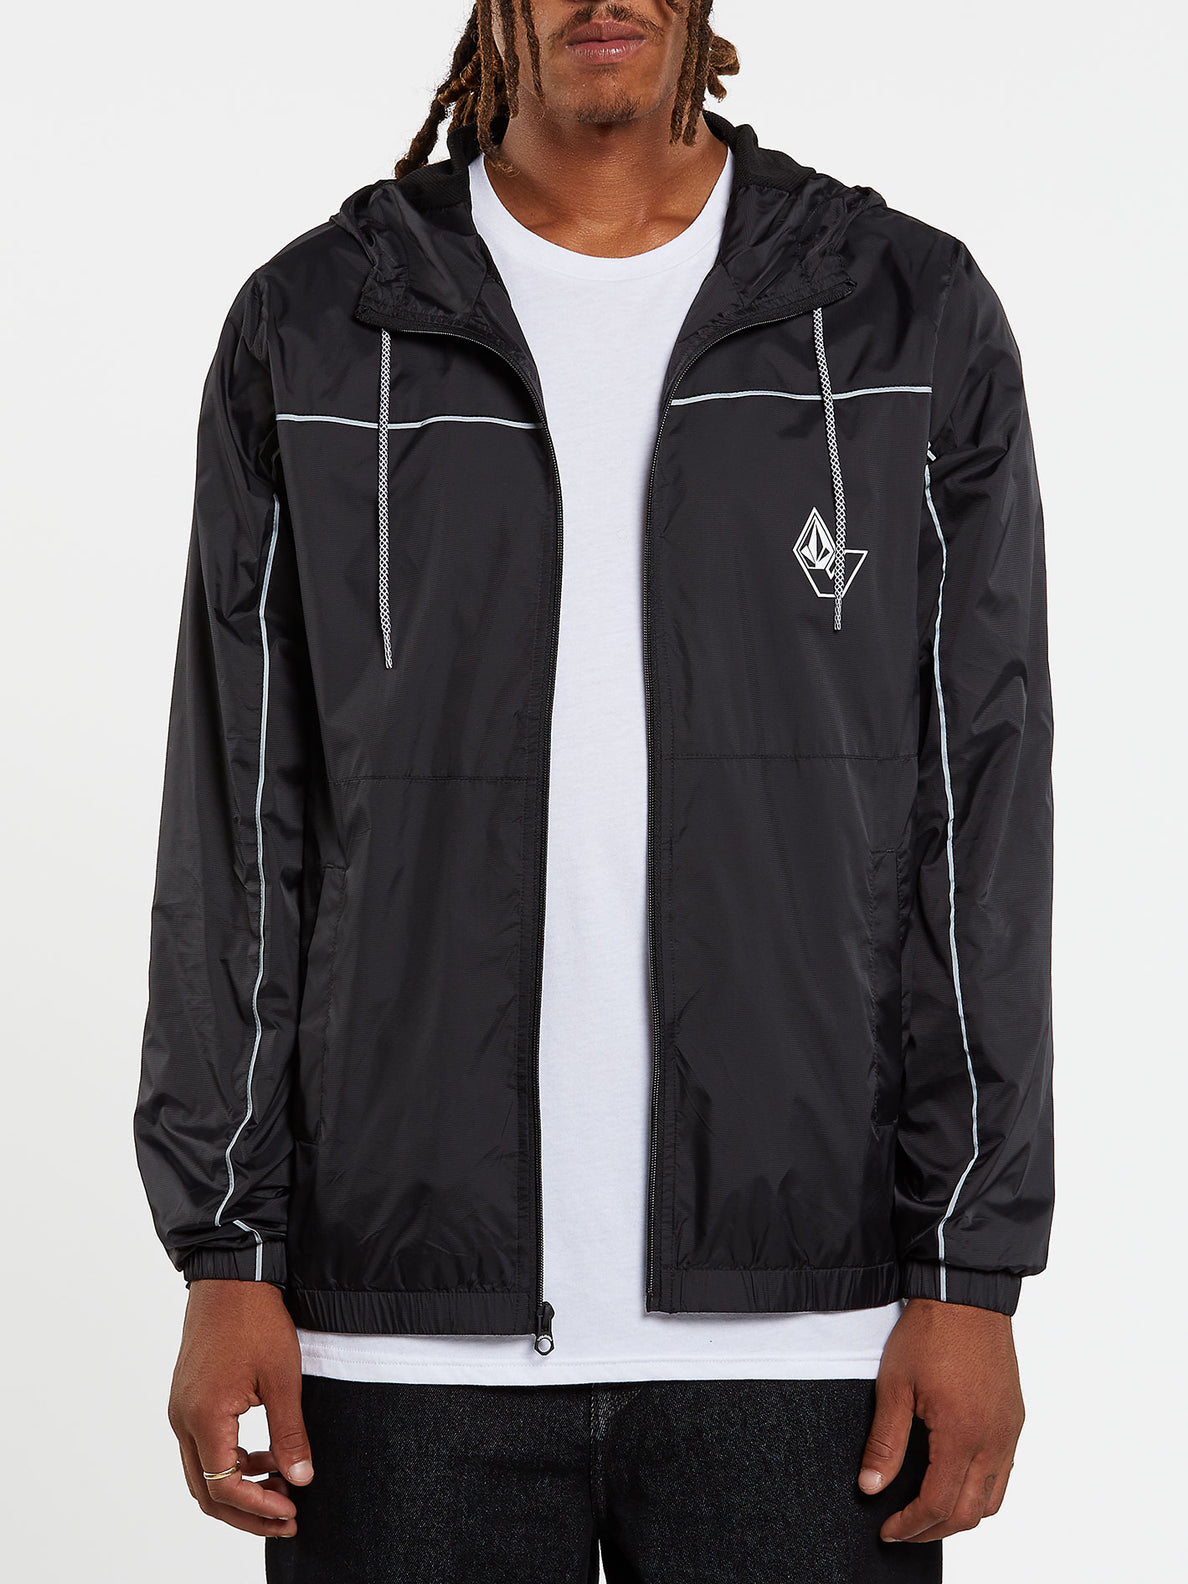 Ermont Jacket - Black (A1532002_BLK) [1]